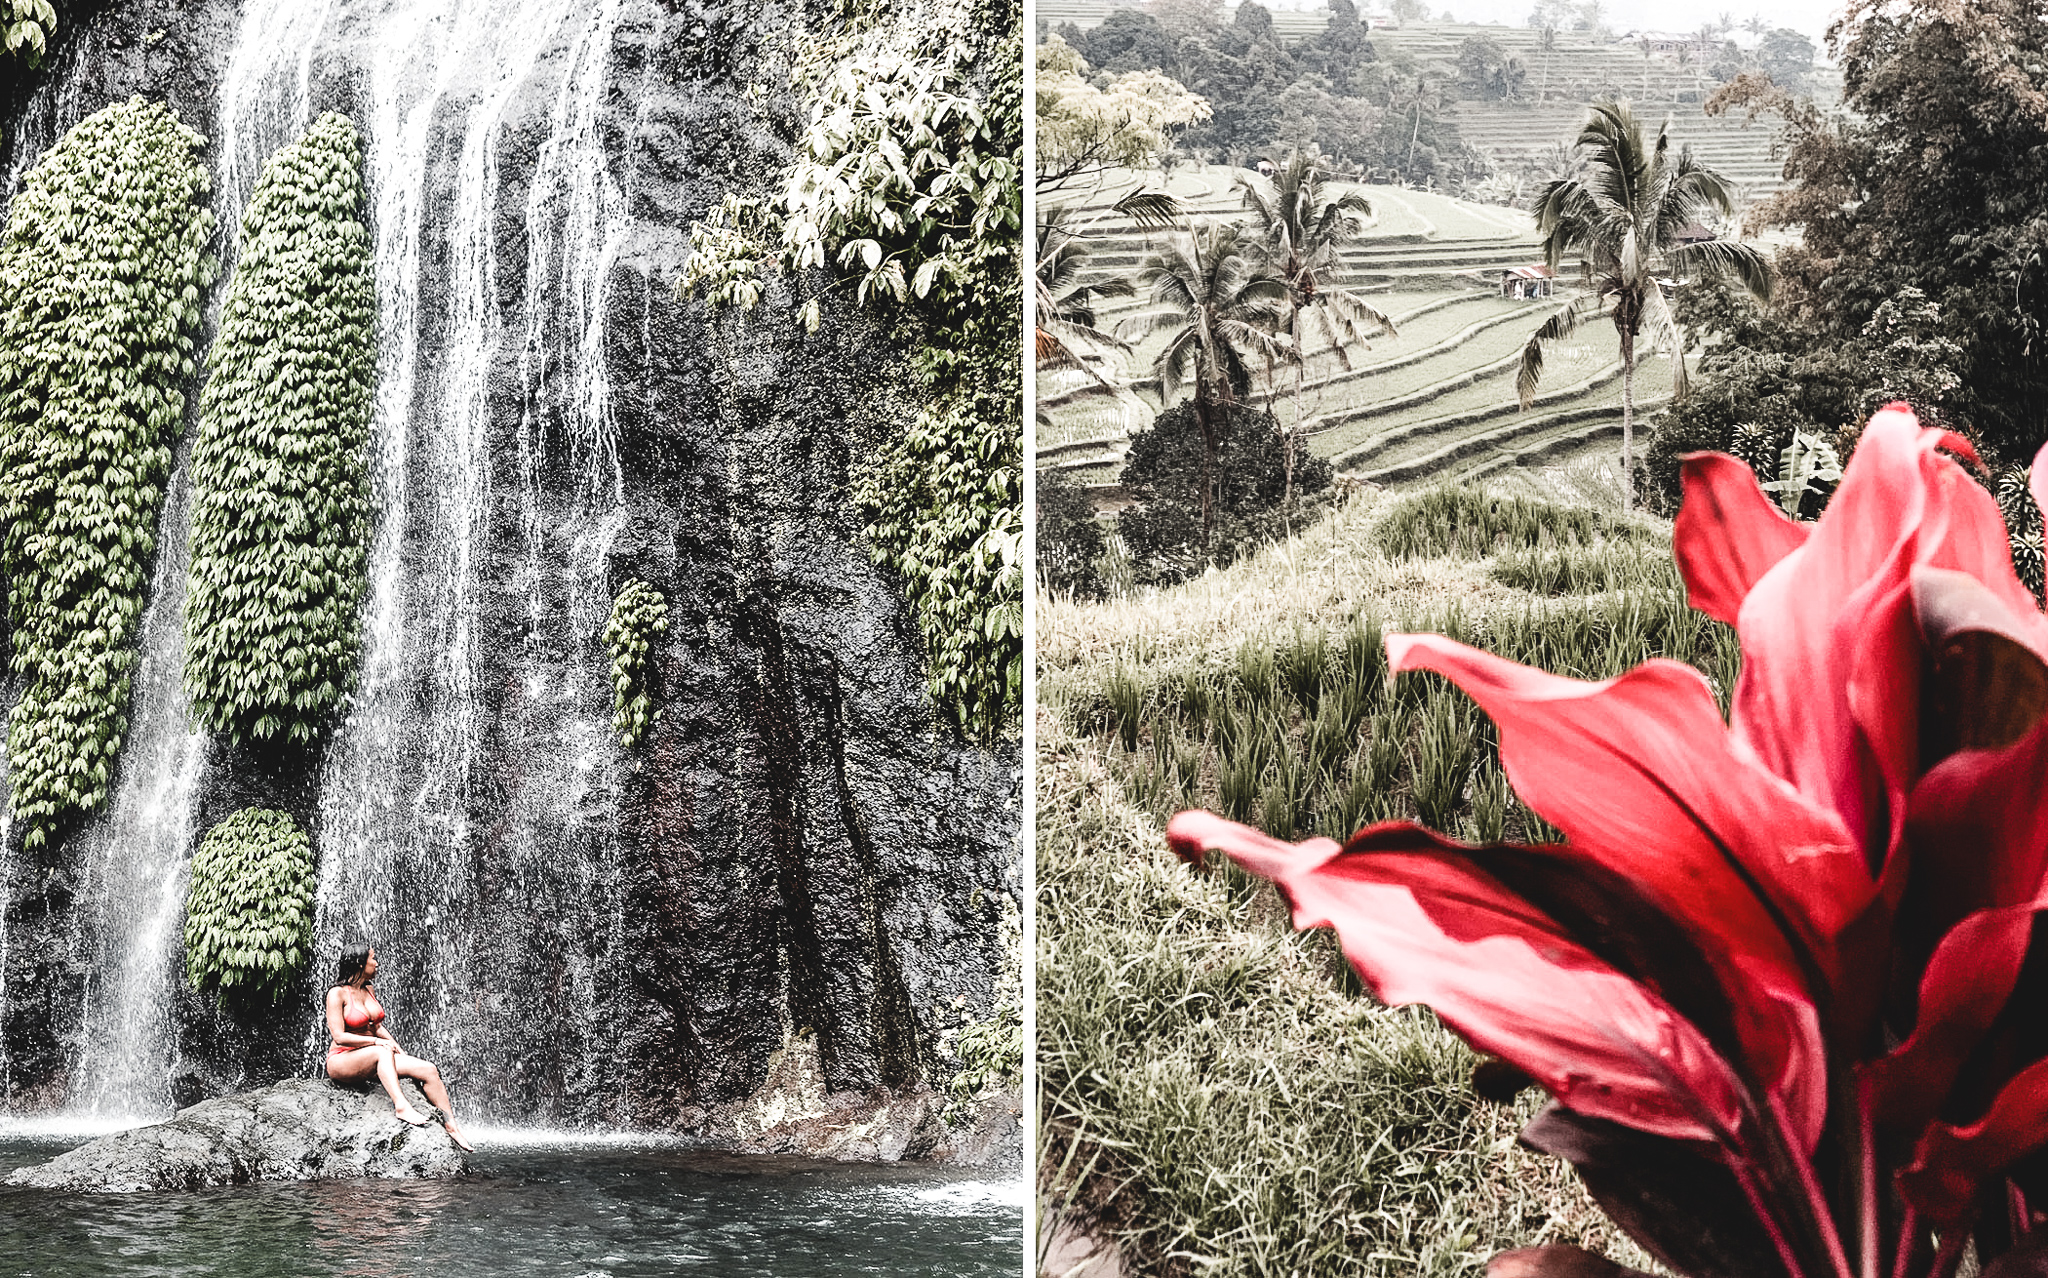 Bali, Indonesia, temple,Forest, waterfall, travel storyteller, travel writer, travel blog, trip in Bali, Gilis Island, Gili Trawanga, recap 2019 to fordward 2020.